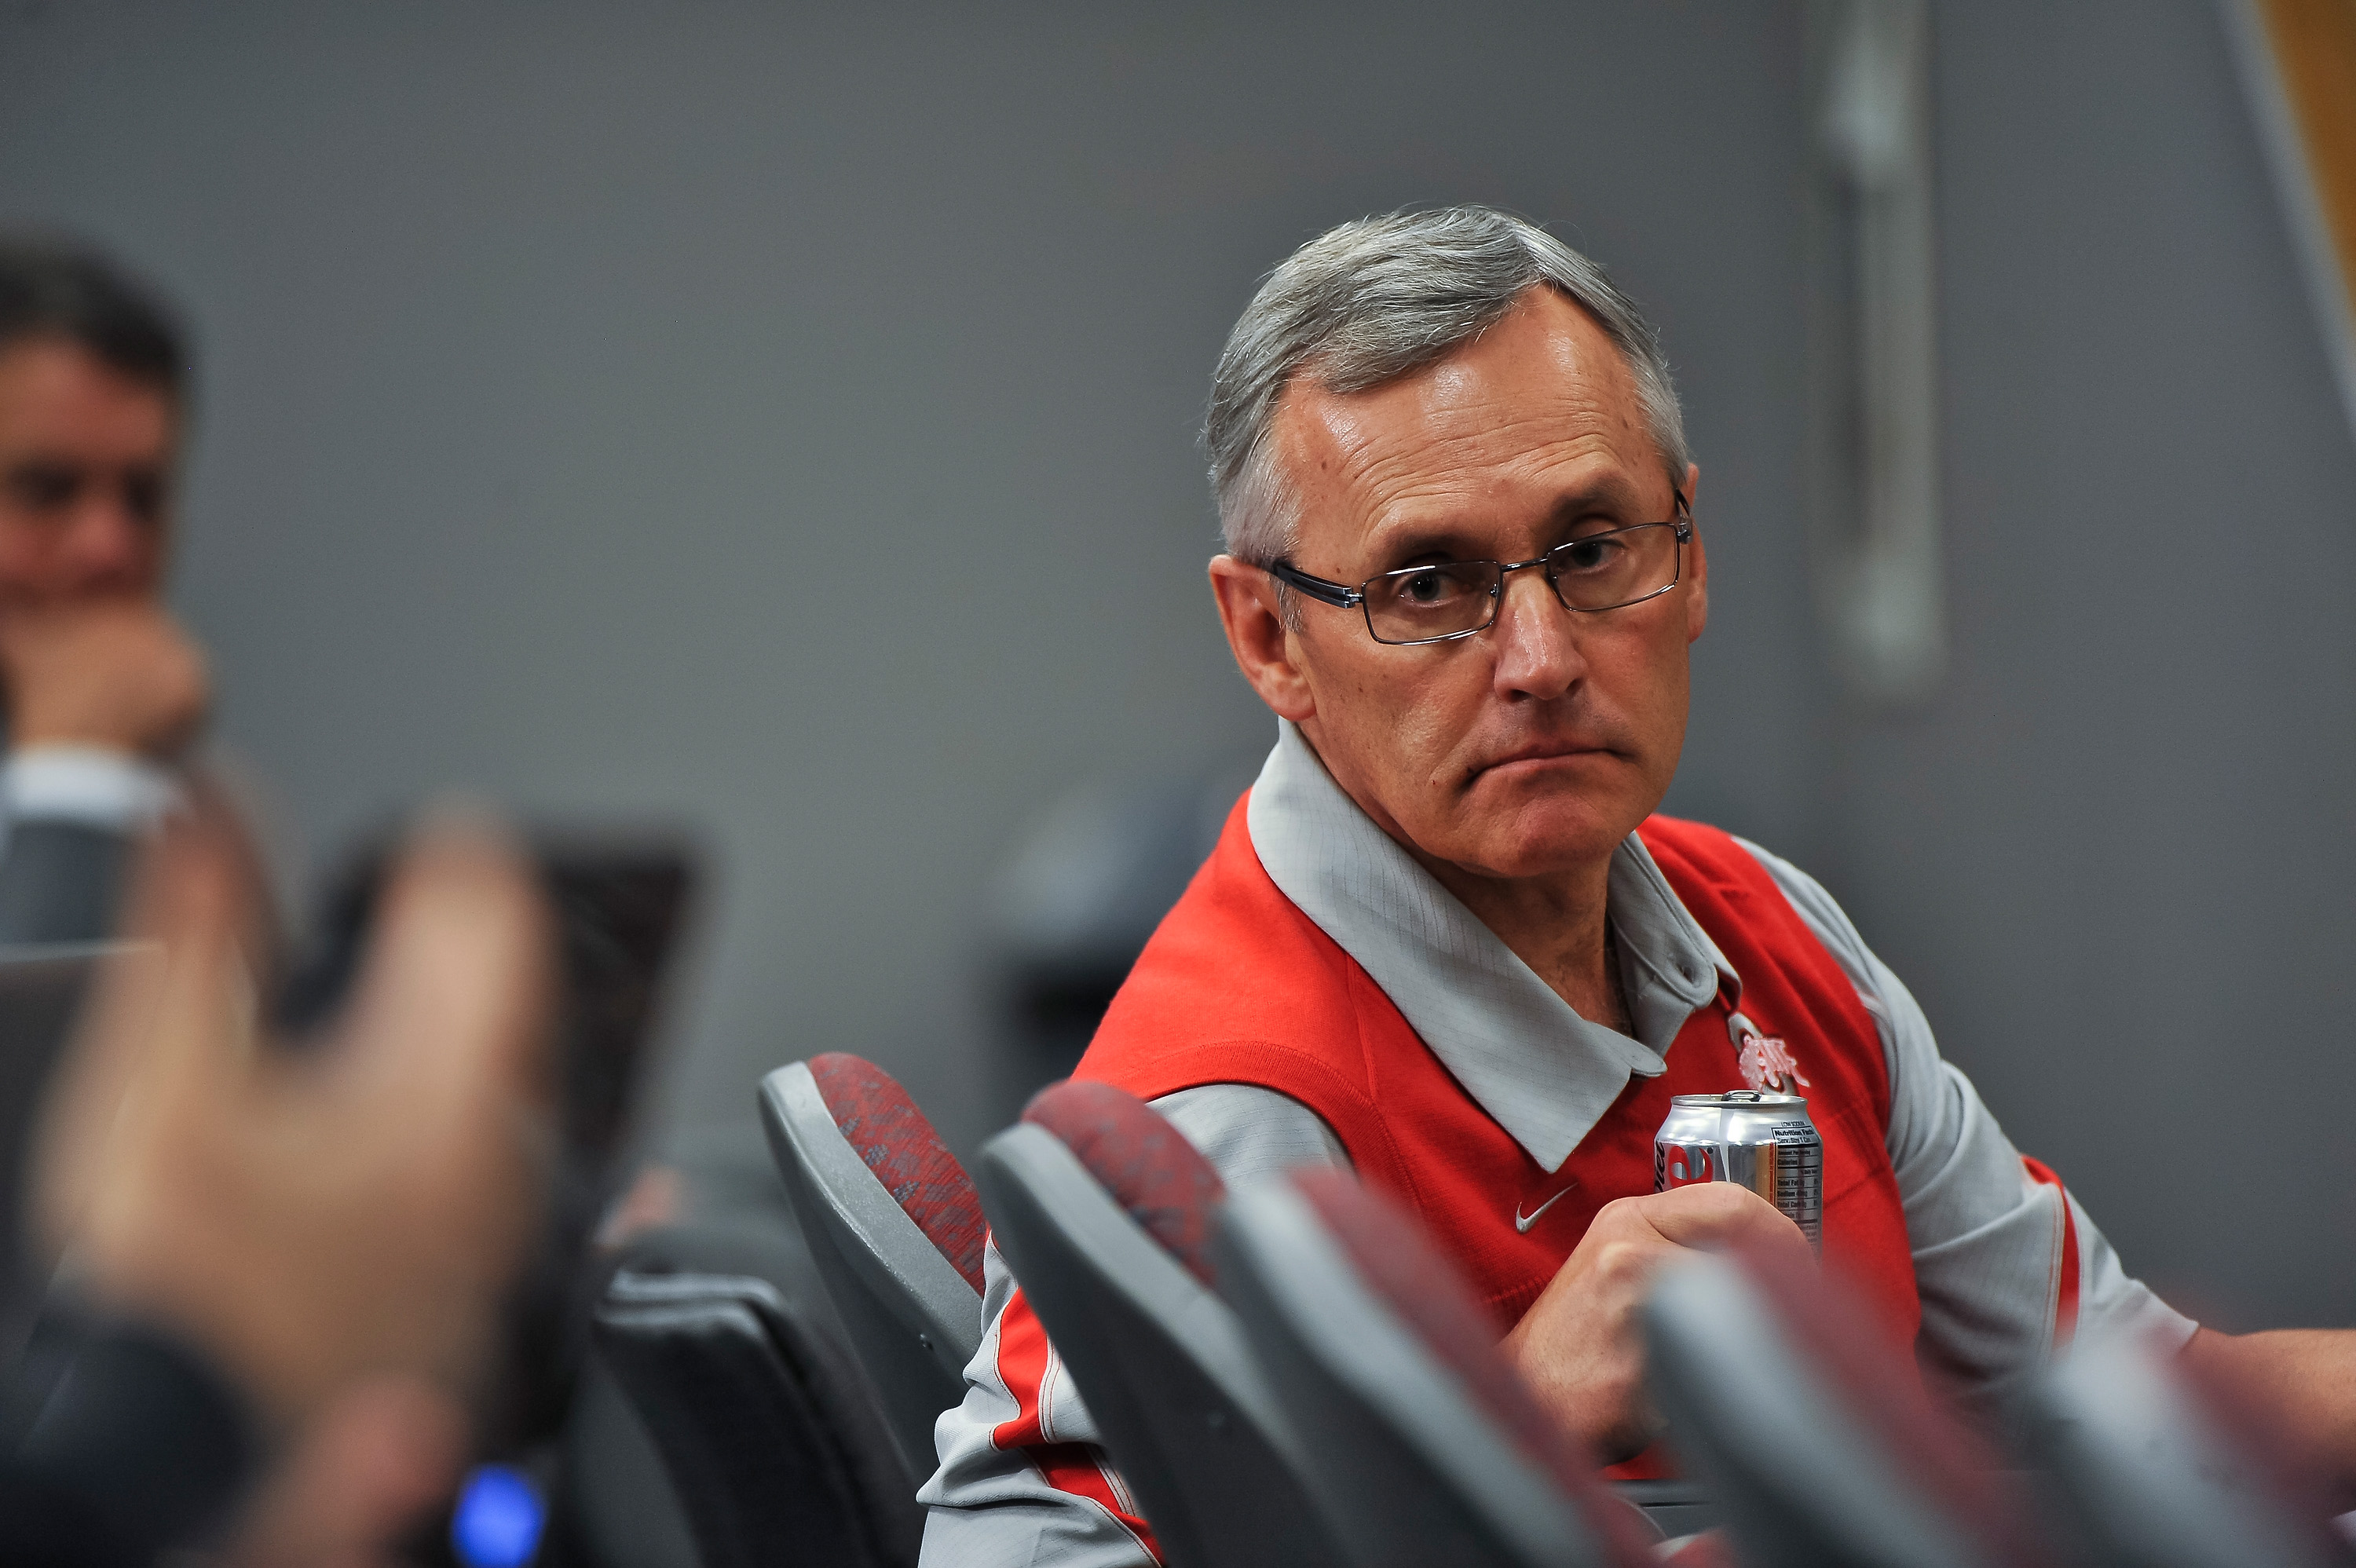 COLUMBUS, OH - MARCH 30:  Head Coach Jim Tressel listens to a member of the media during a press conference before the start of Spring practices at the Woody Hayes Athletic Center at The Ohio State University on March 30, 2011 in Columbus, Ohio. (Photo by